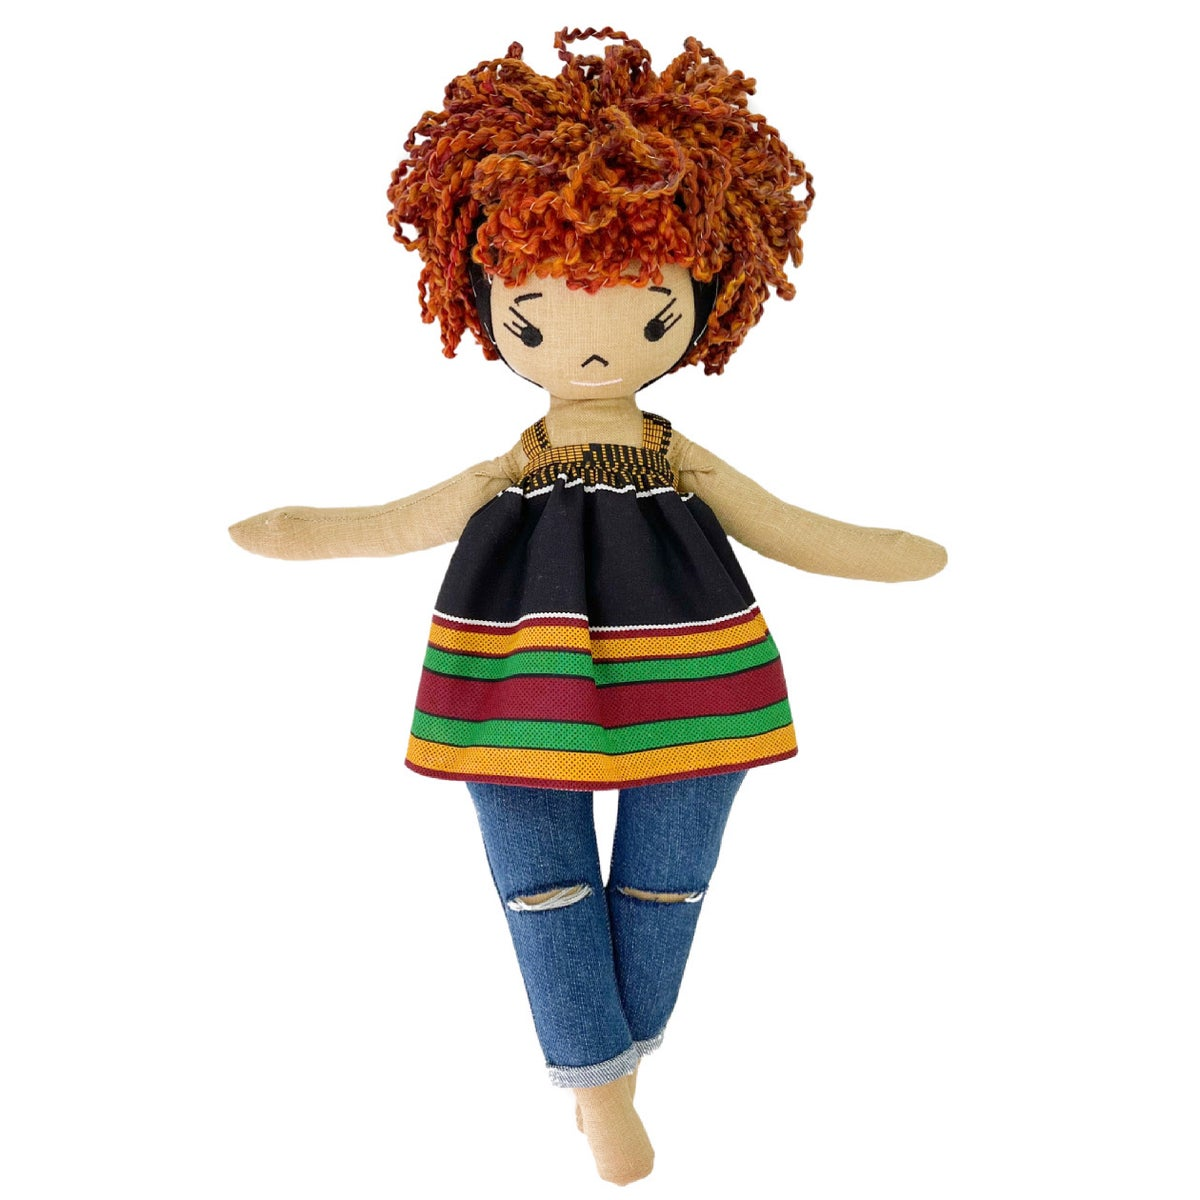 Tomiko More to Love Handmade Linen Doll (Waitlist Preorder Item - ship date Oct 1-Mar 30,2022)